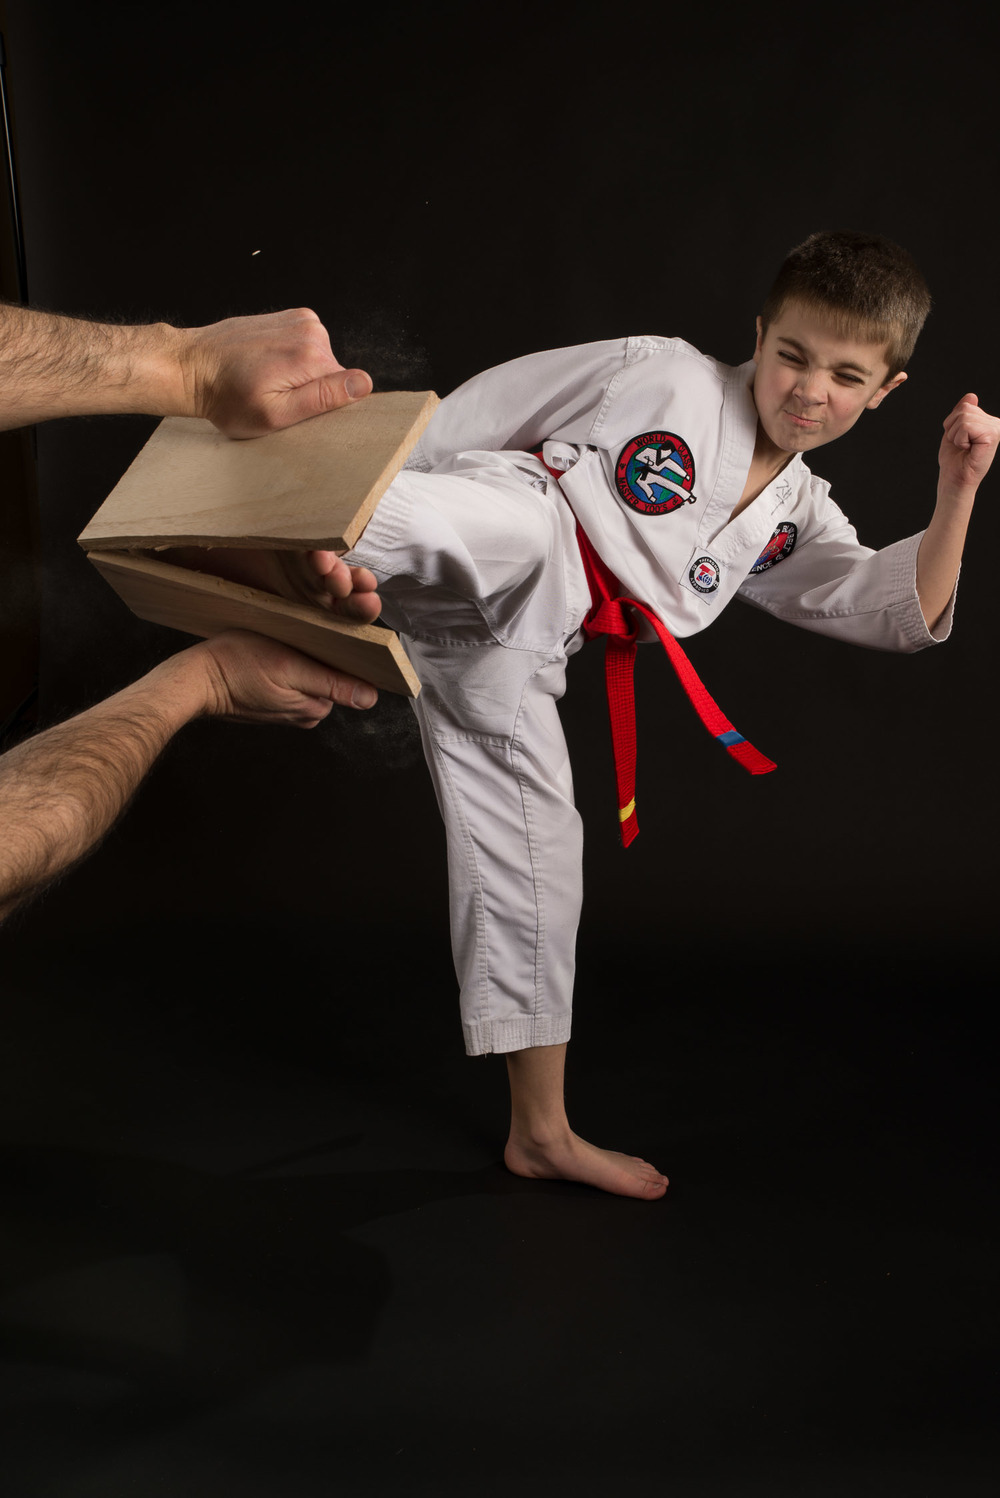 TAEKWONDO BOY KICK BOARD SHOOT.jpg